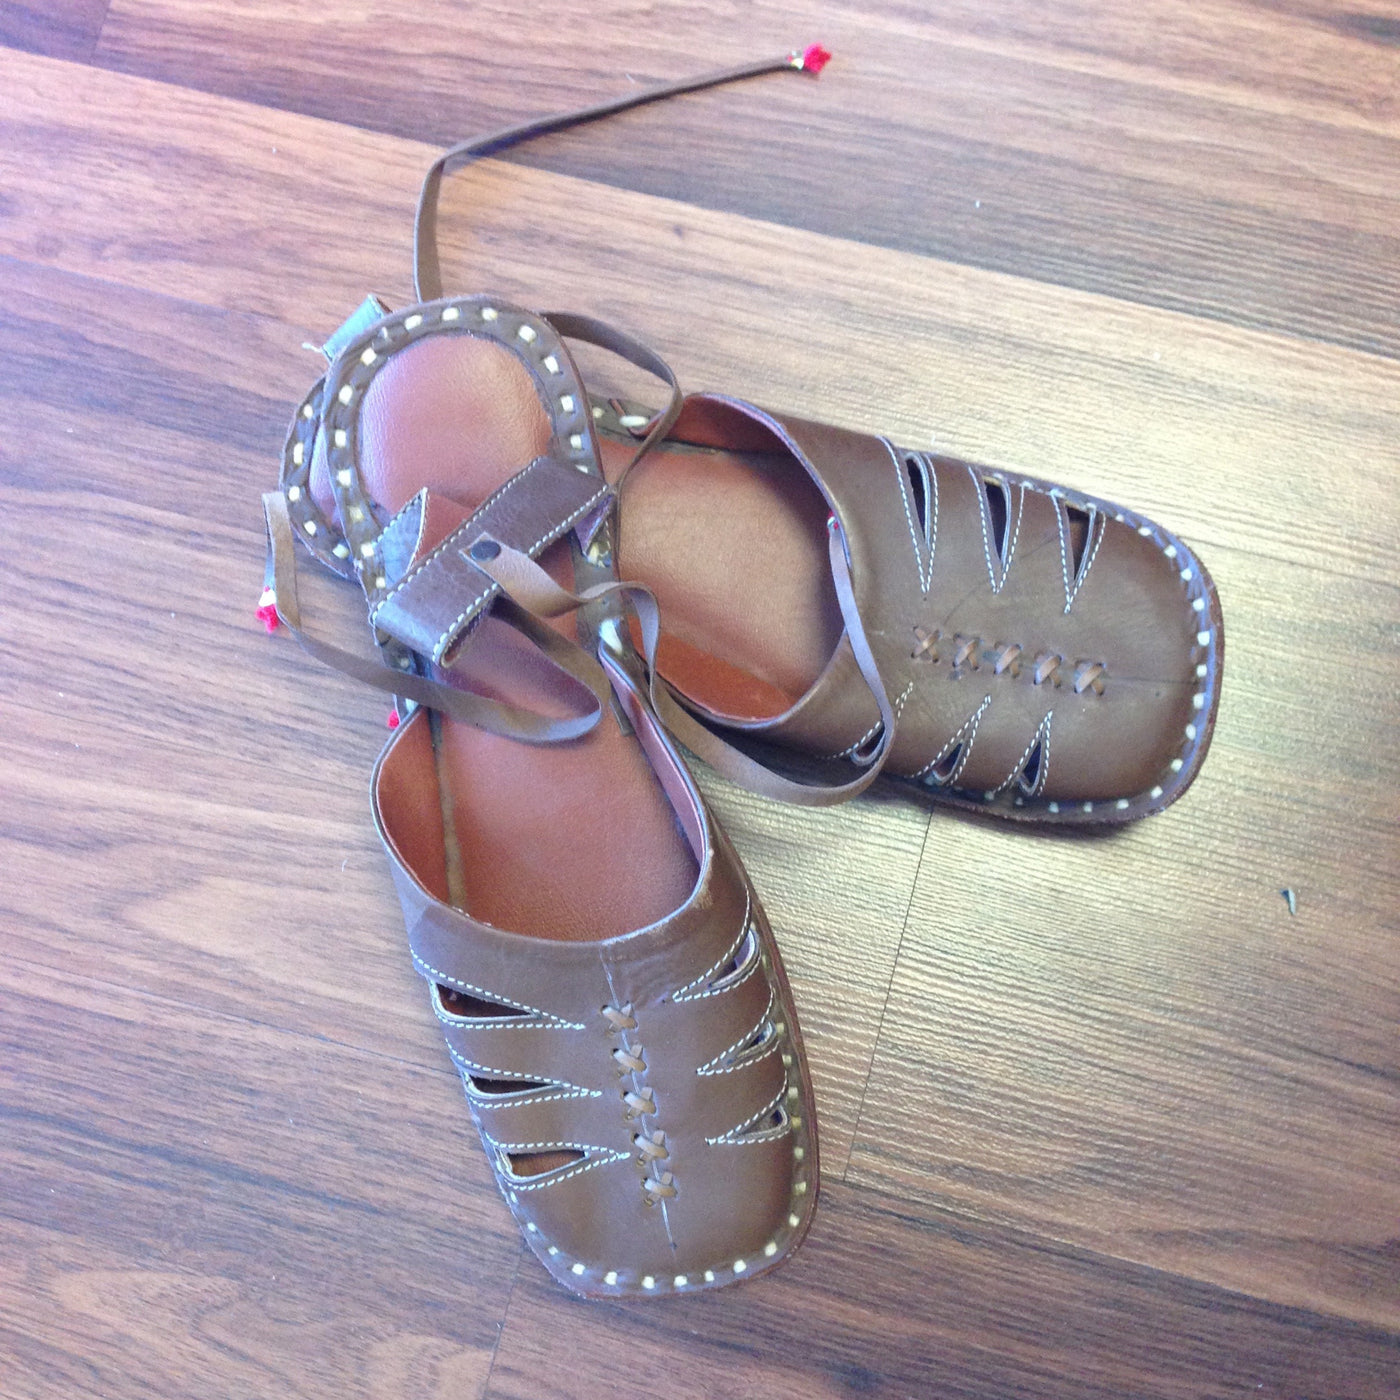 Pure Sandals Handcrafted Leather Sandals Handcrafted Leather Handcrafted Leather Pure Sandals Leather Handcrafted Pure Pure zUMqSVGp